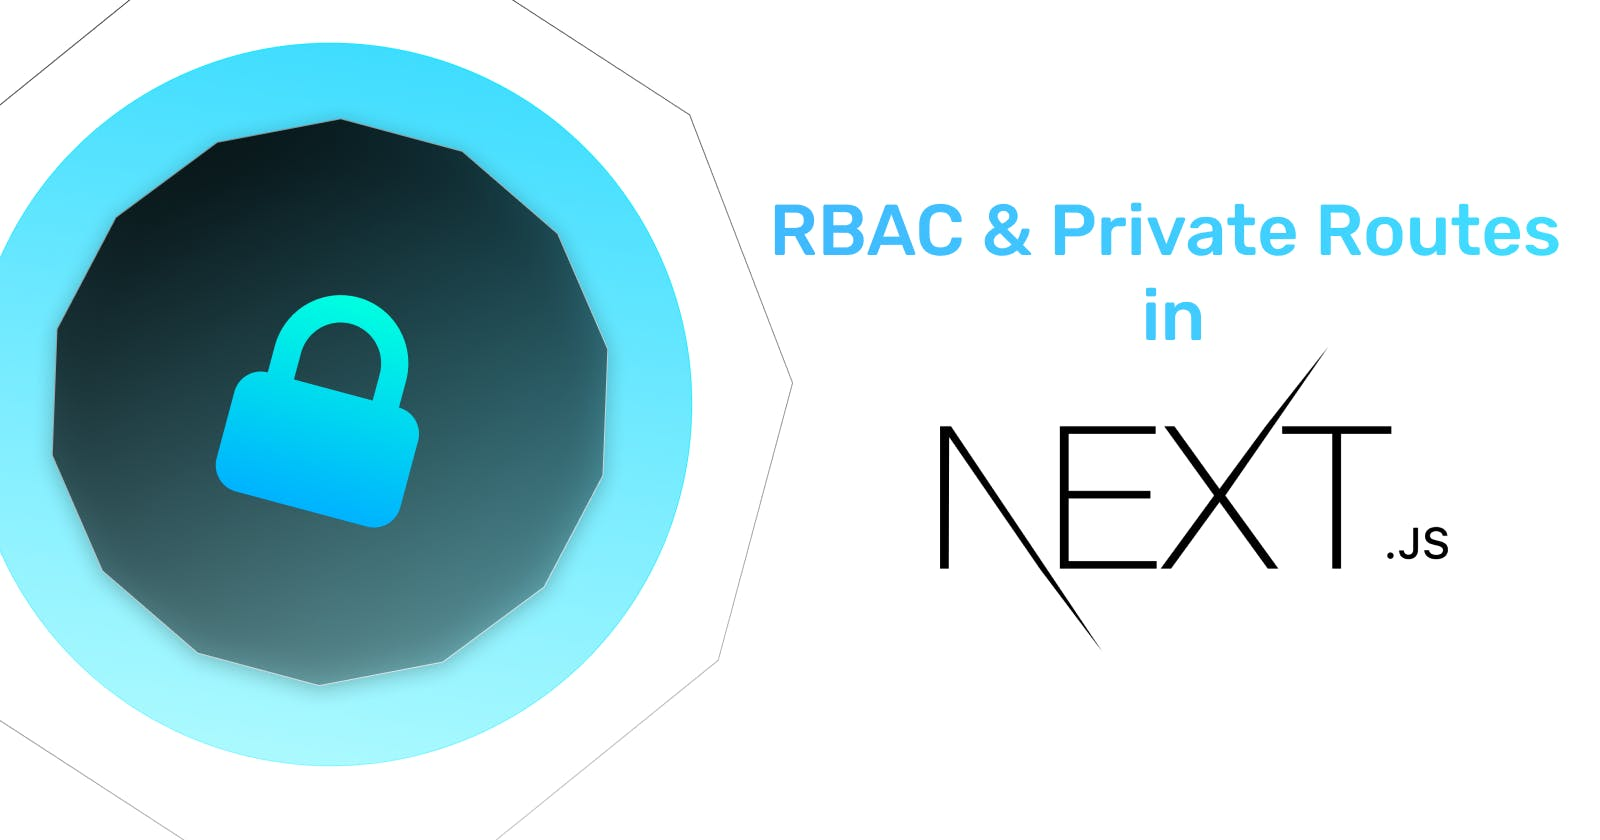 RBAC & Private Routes in Next.js using NextShield